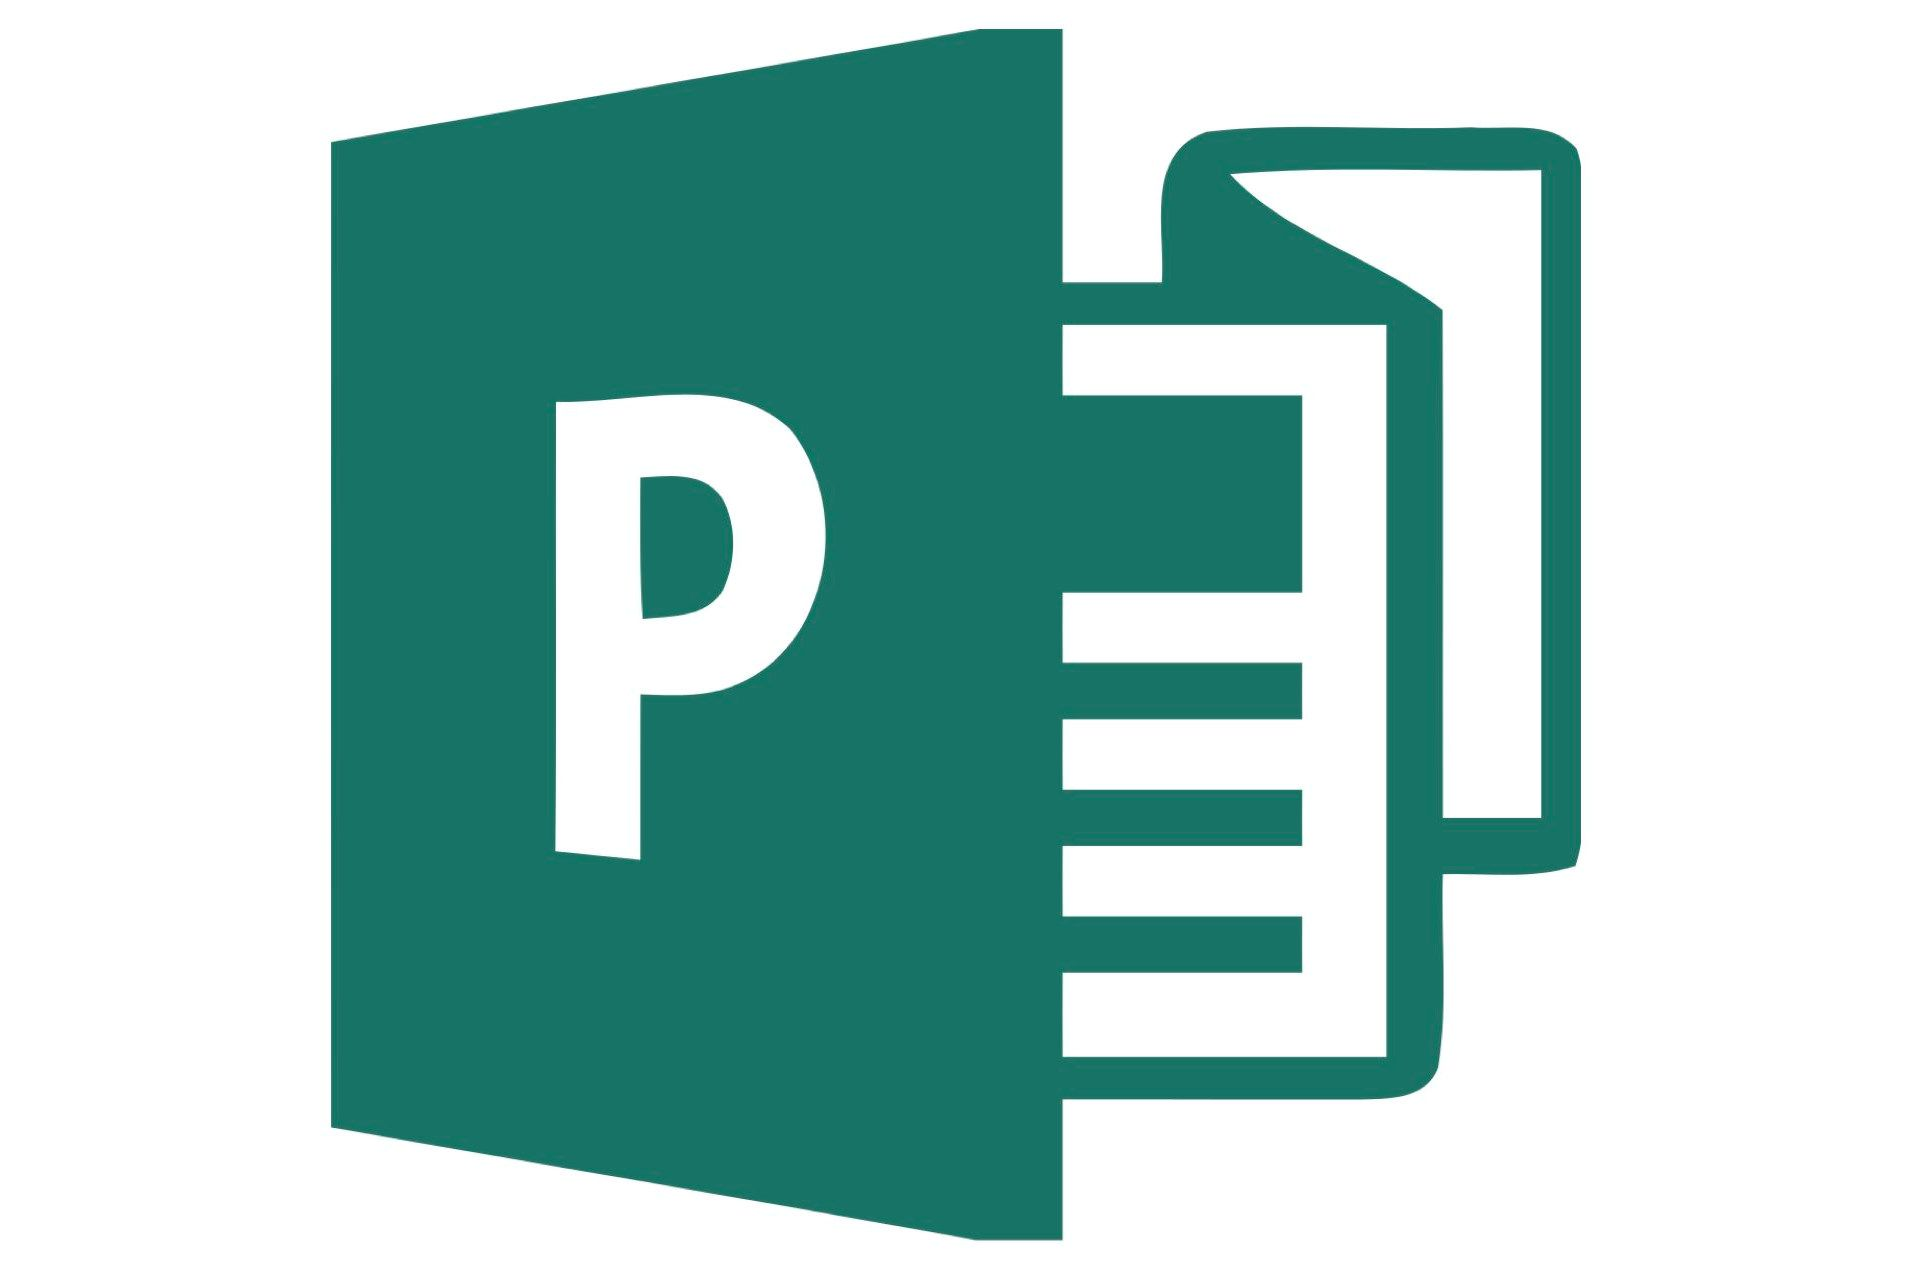 Microsoft Publisher Free Template from www.lifewire.com